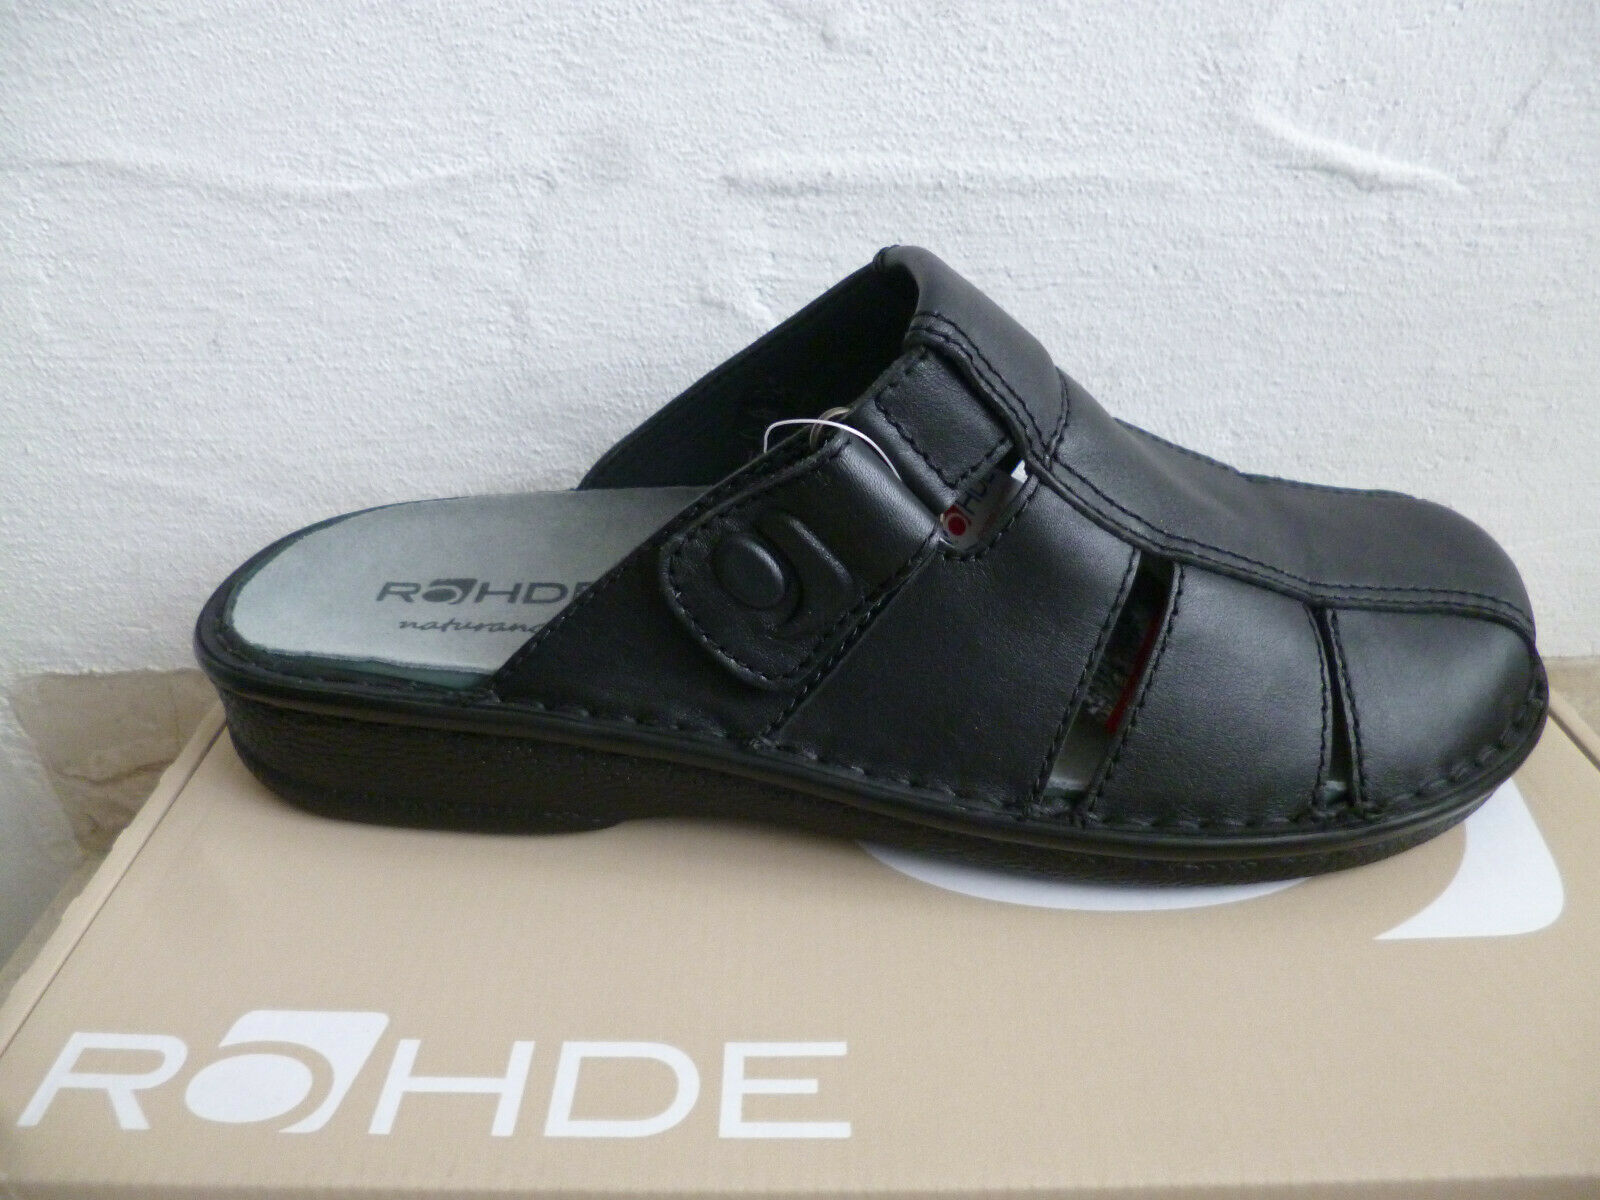 Rohde Men's Clogs Slippers House Shoes Mules Sabot Black Real Leather New